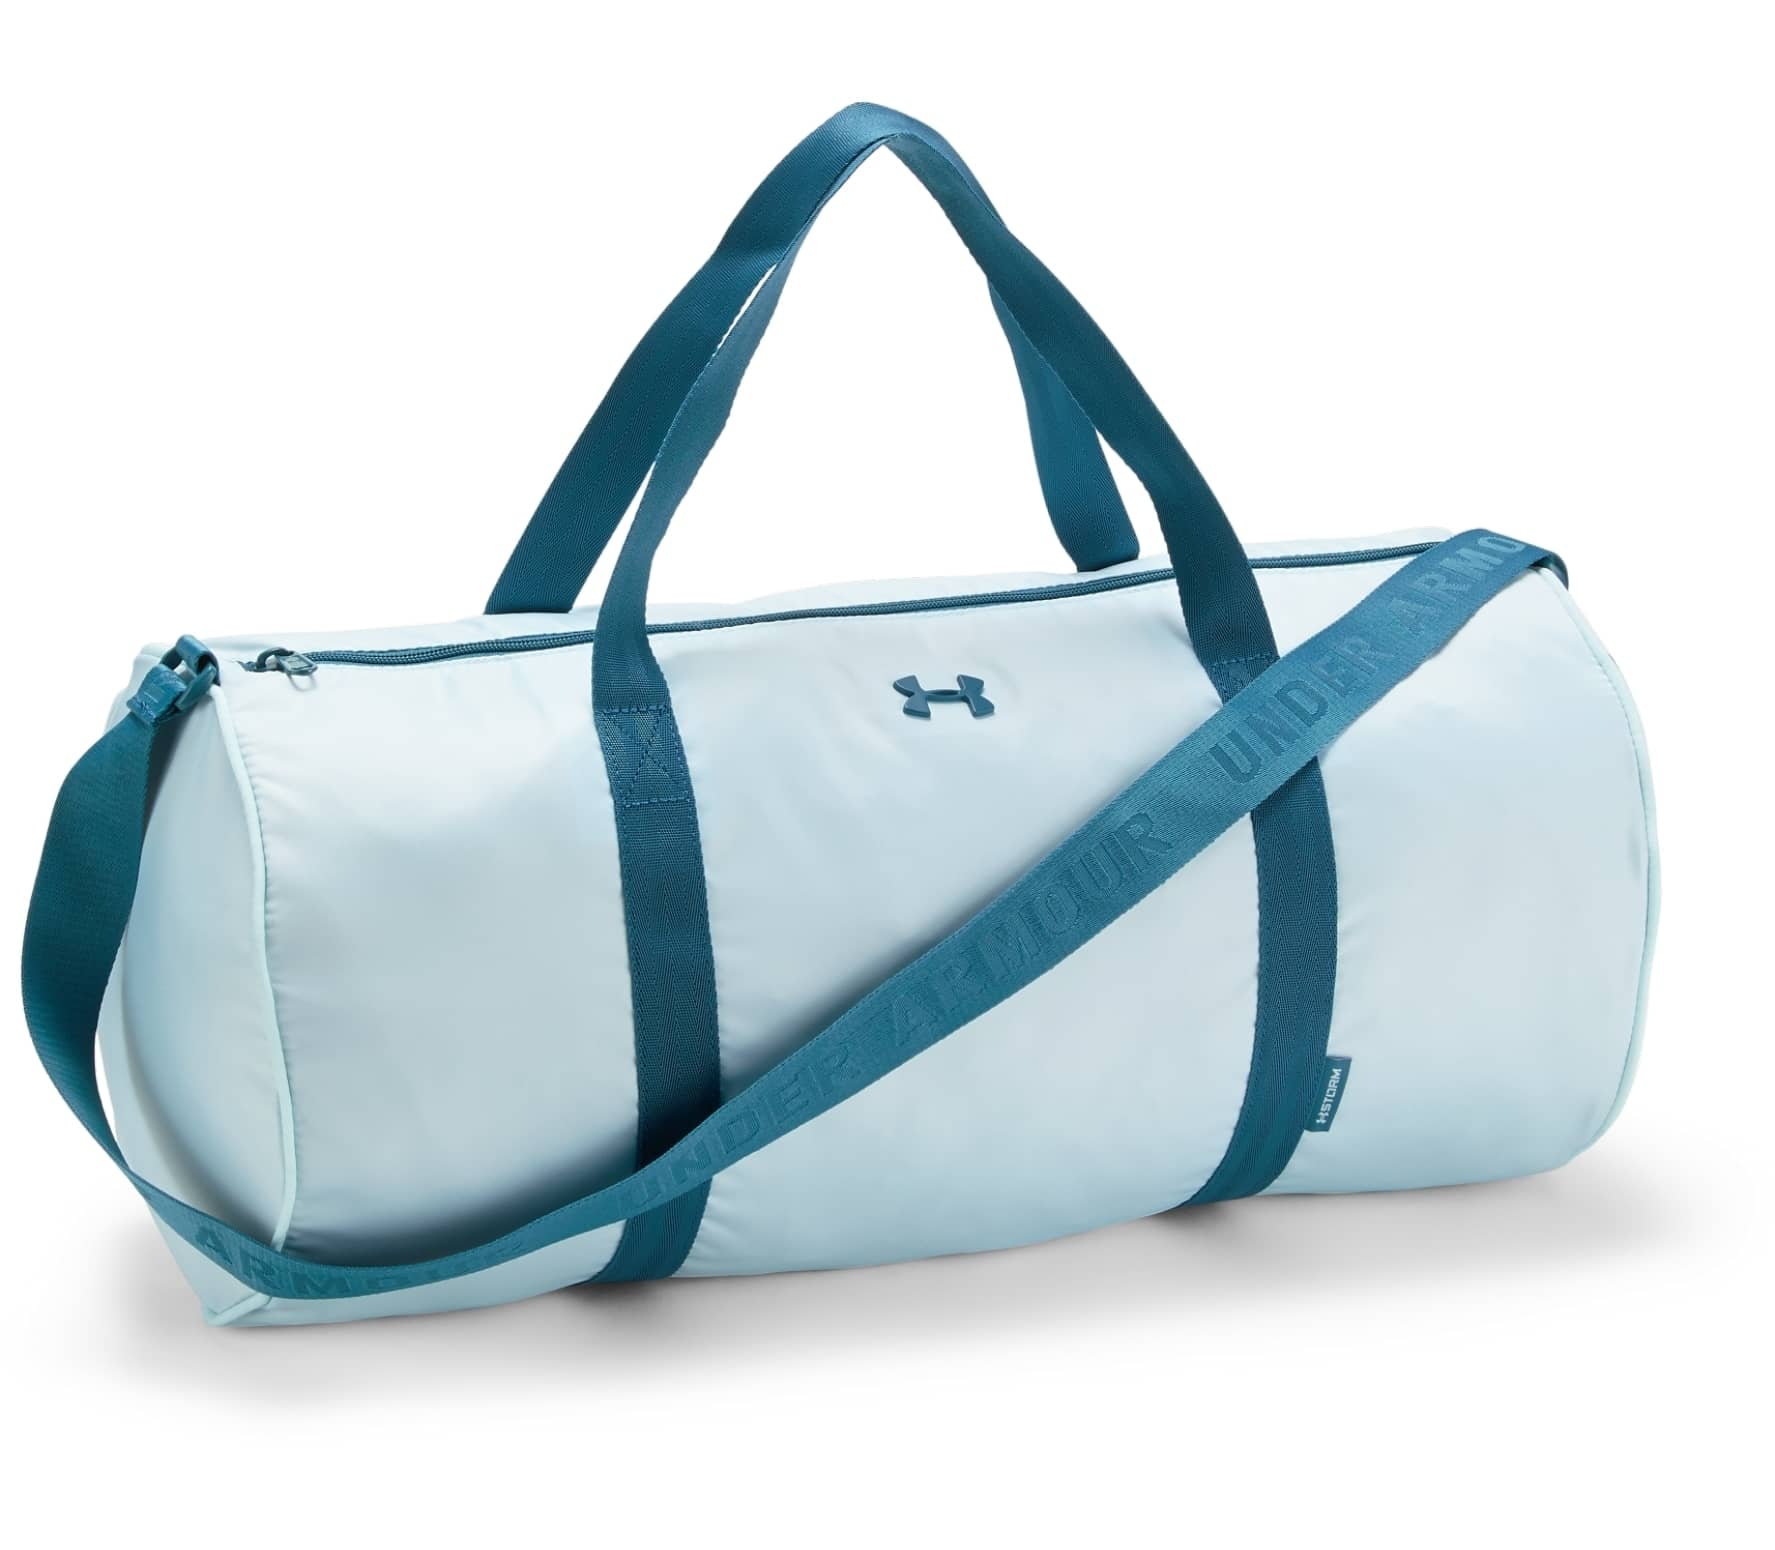 c1bfa7045ca2 Under Armour - UA Favorite duffel bag 2.0 women s training duffel bag bag (light  blue